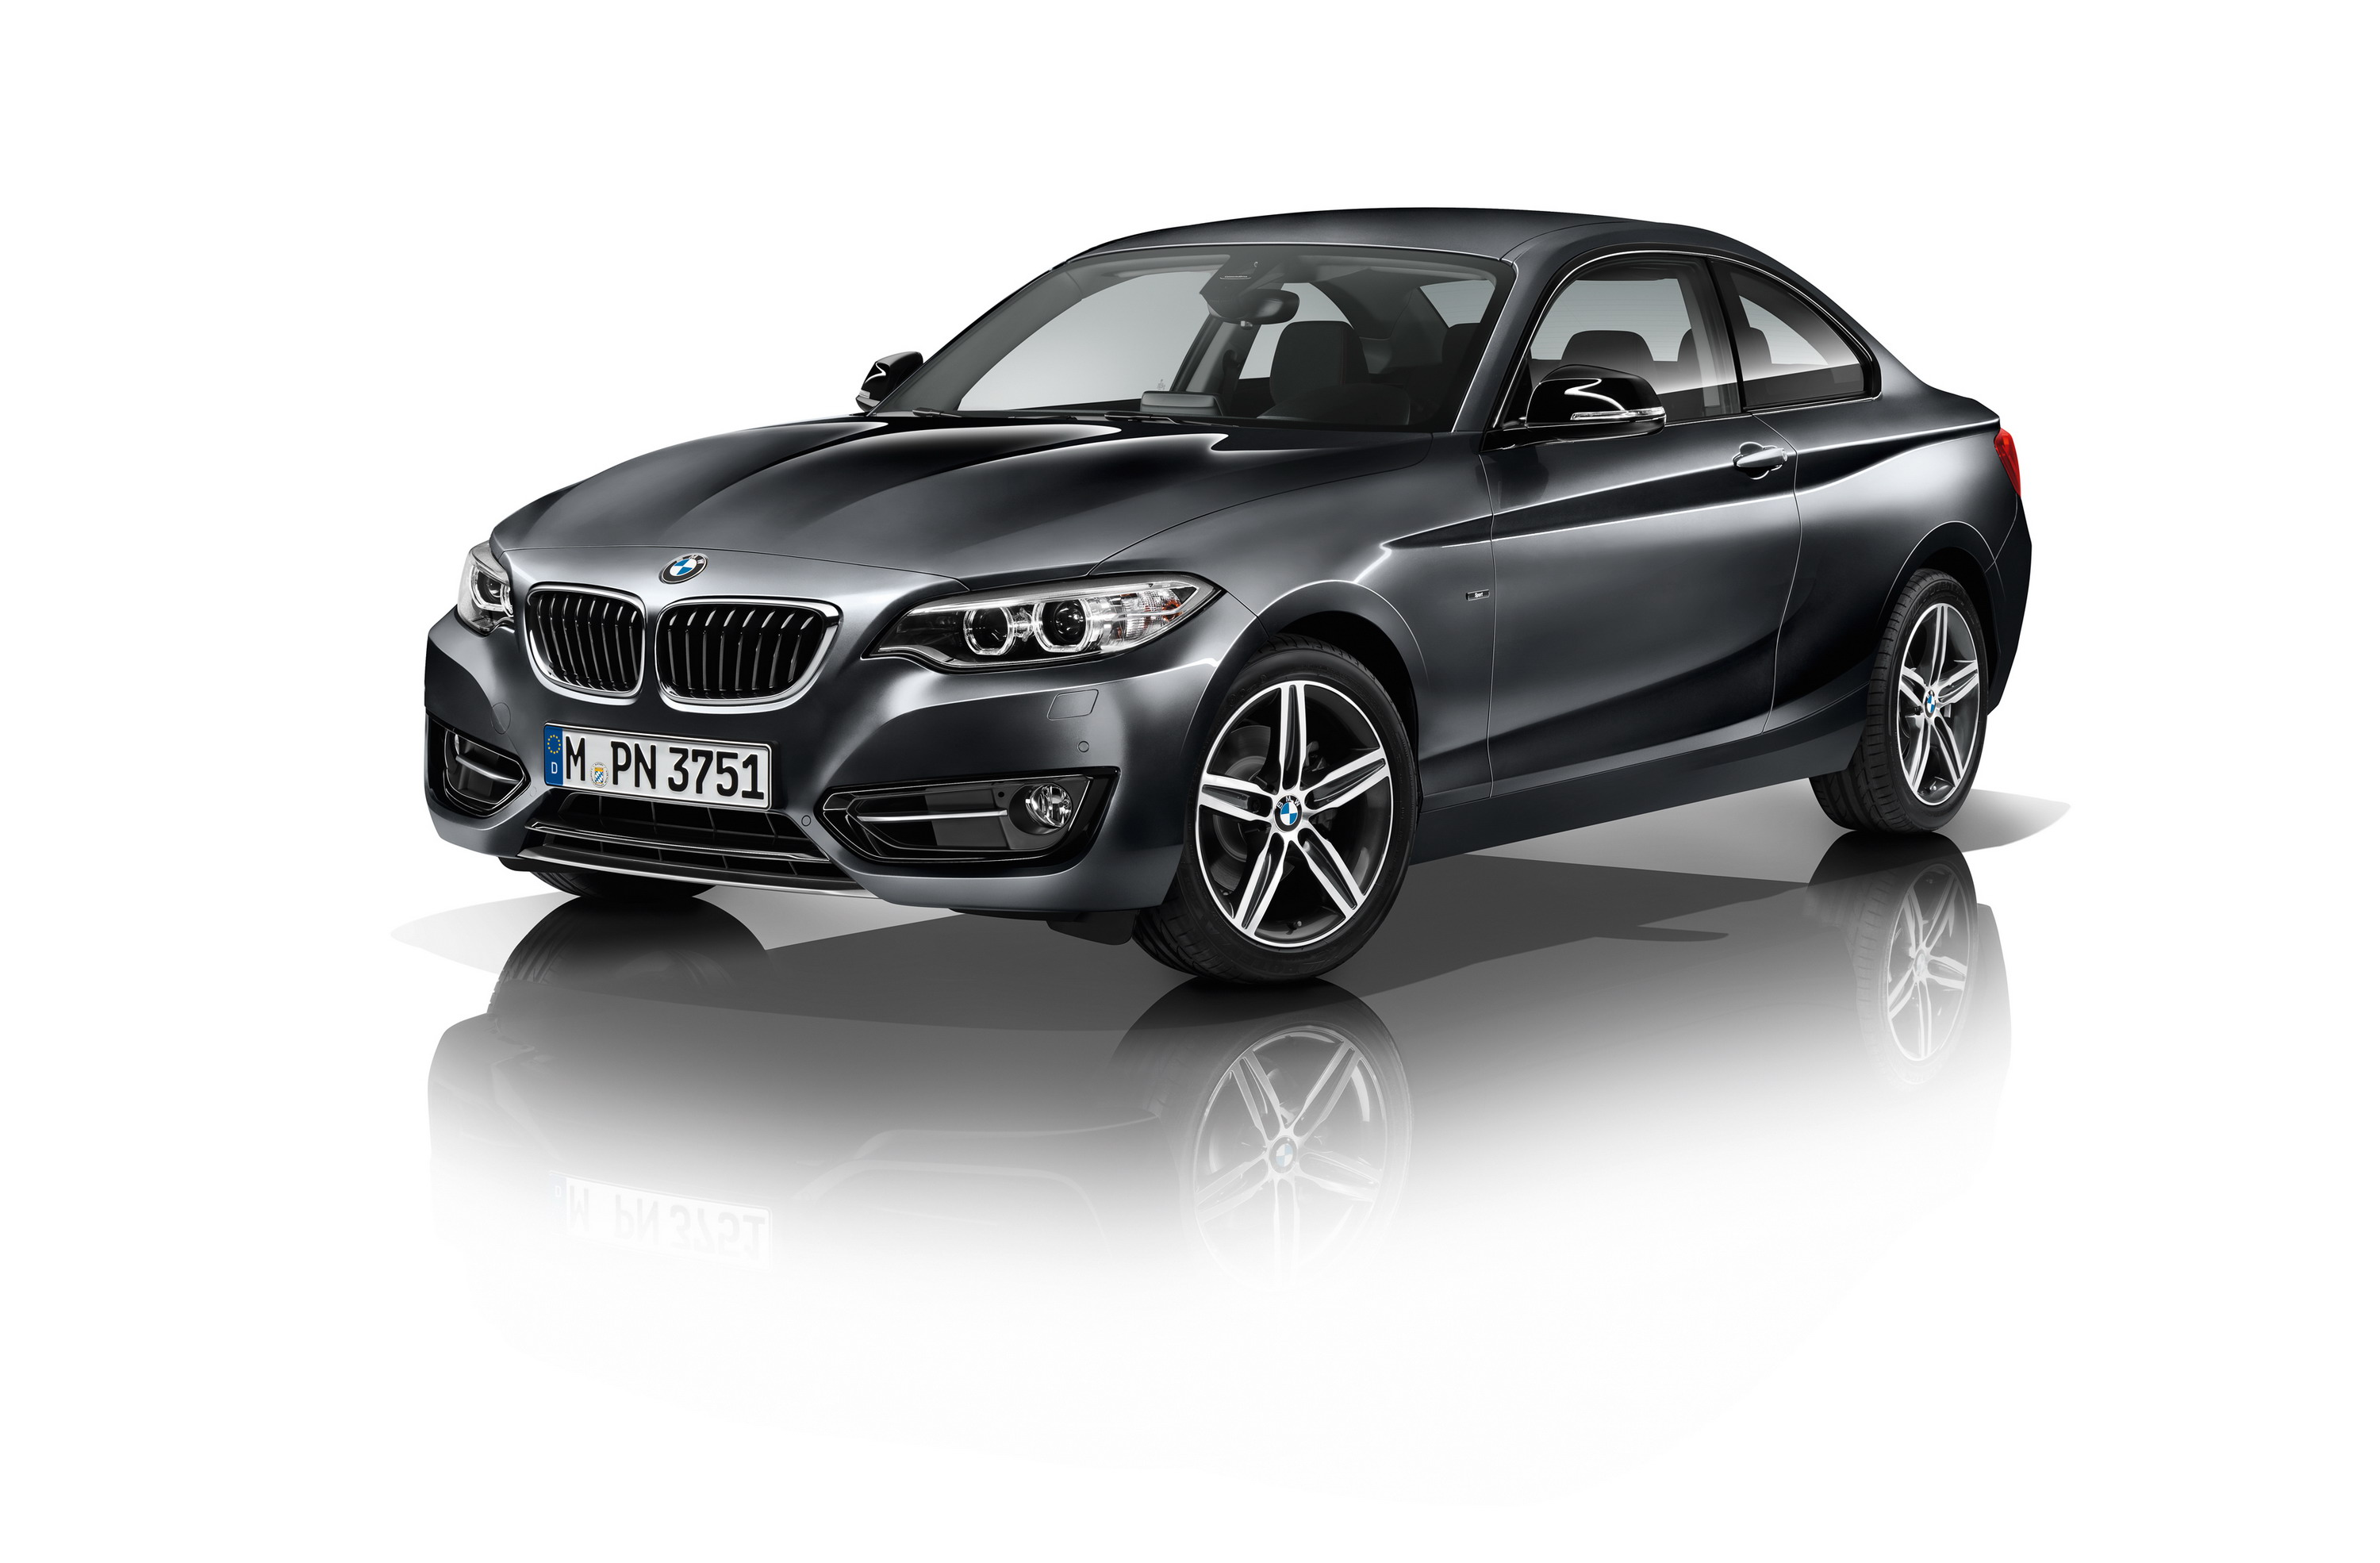 2015 Bmw 228i Coupe With Track Handling Package Top Speed